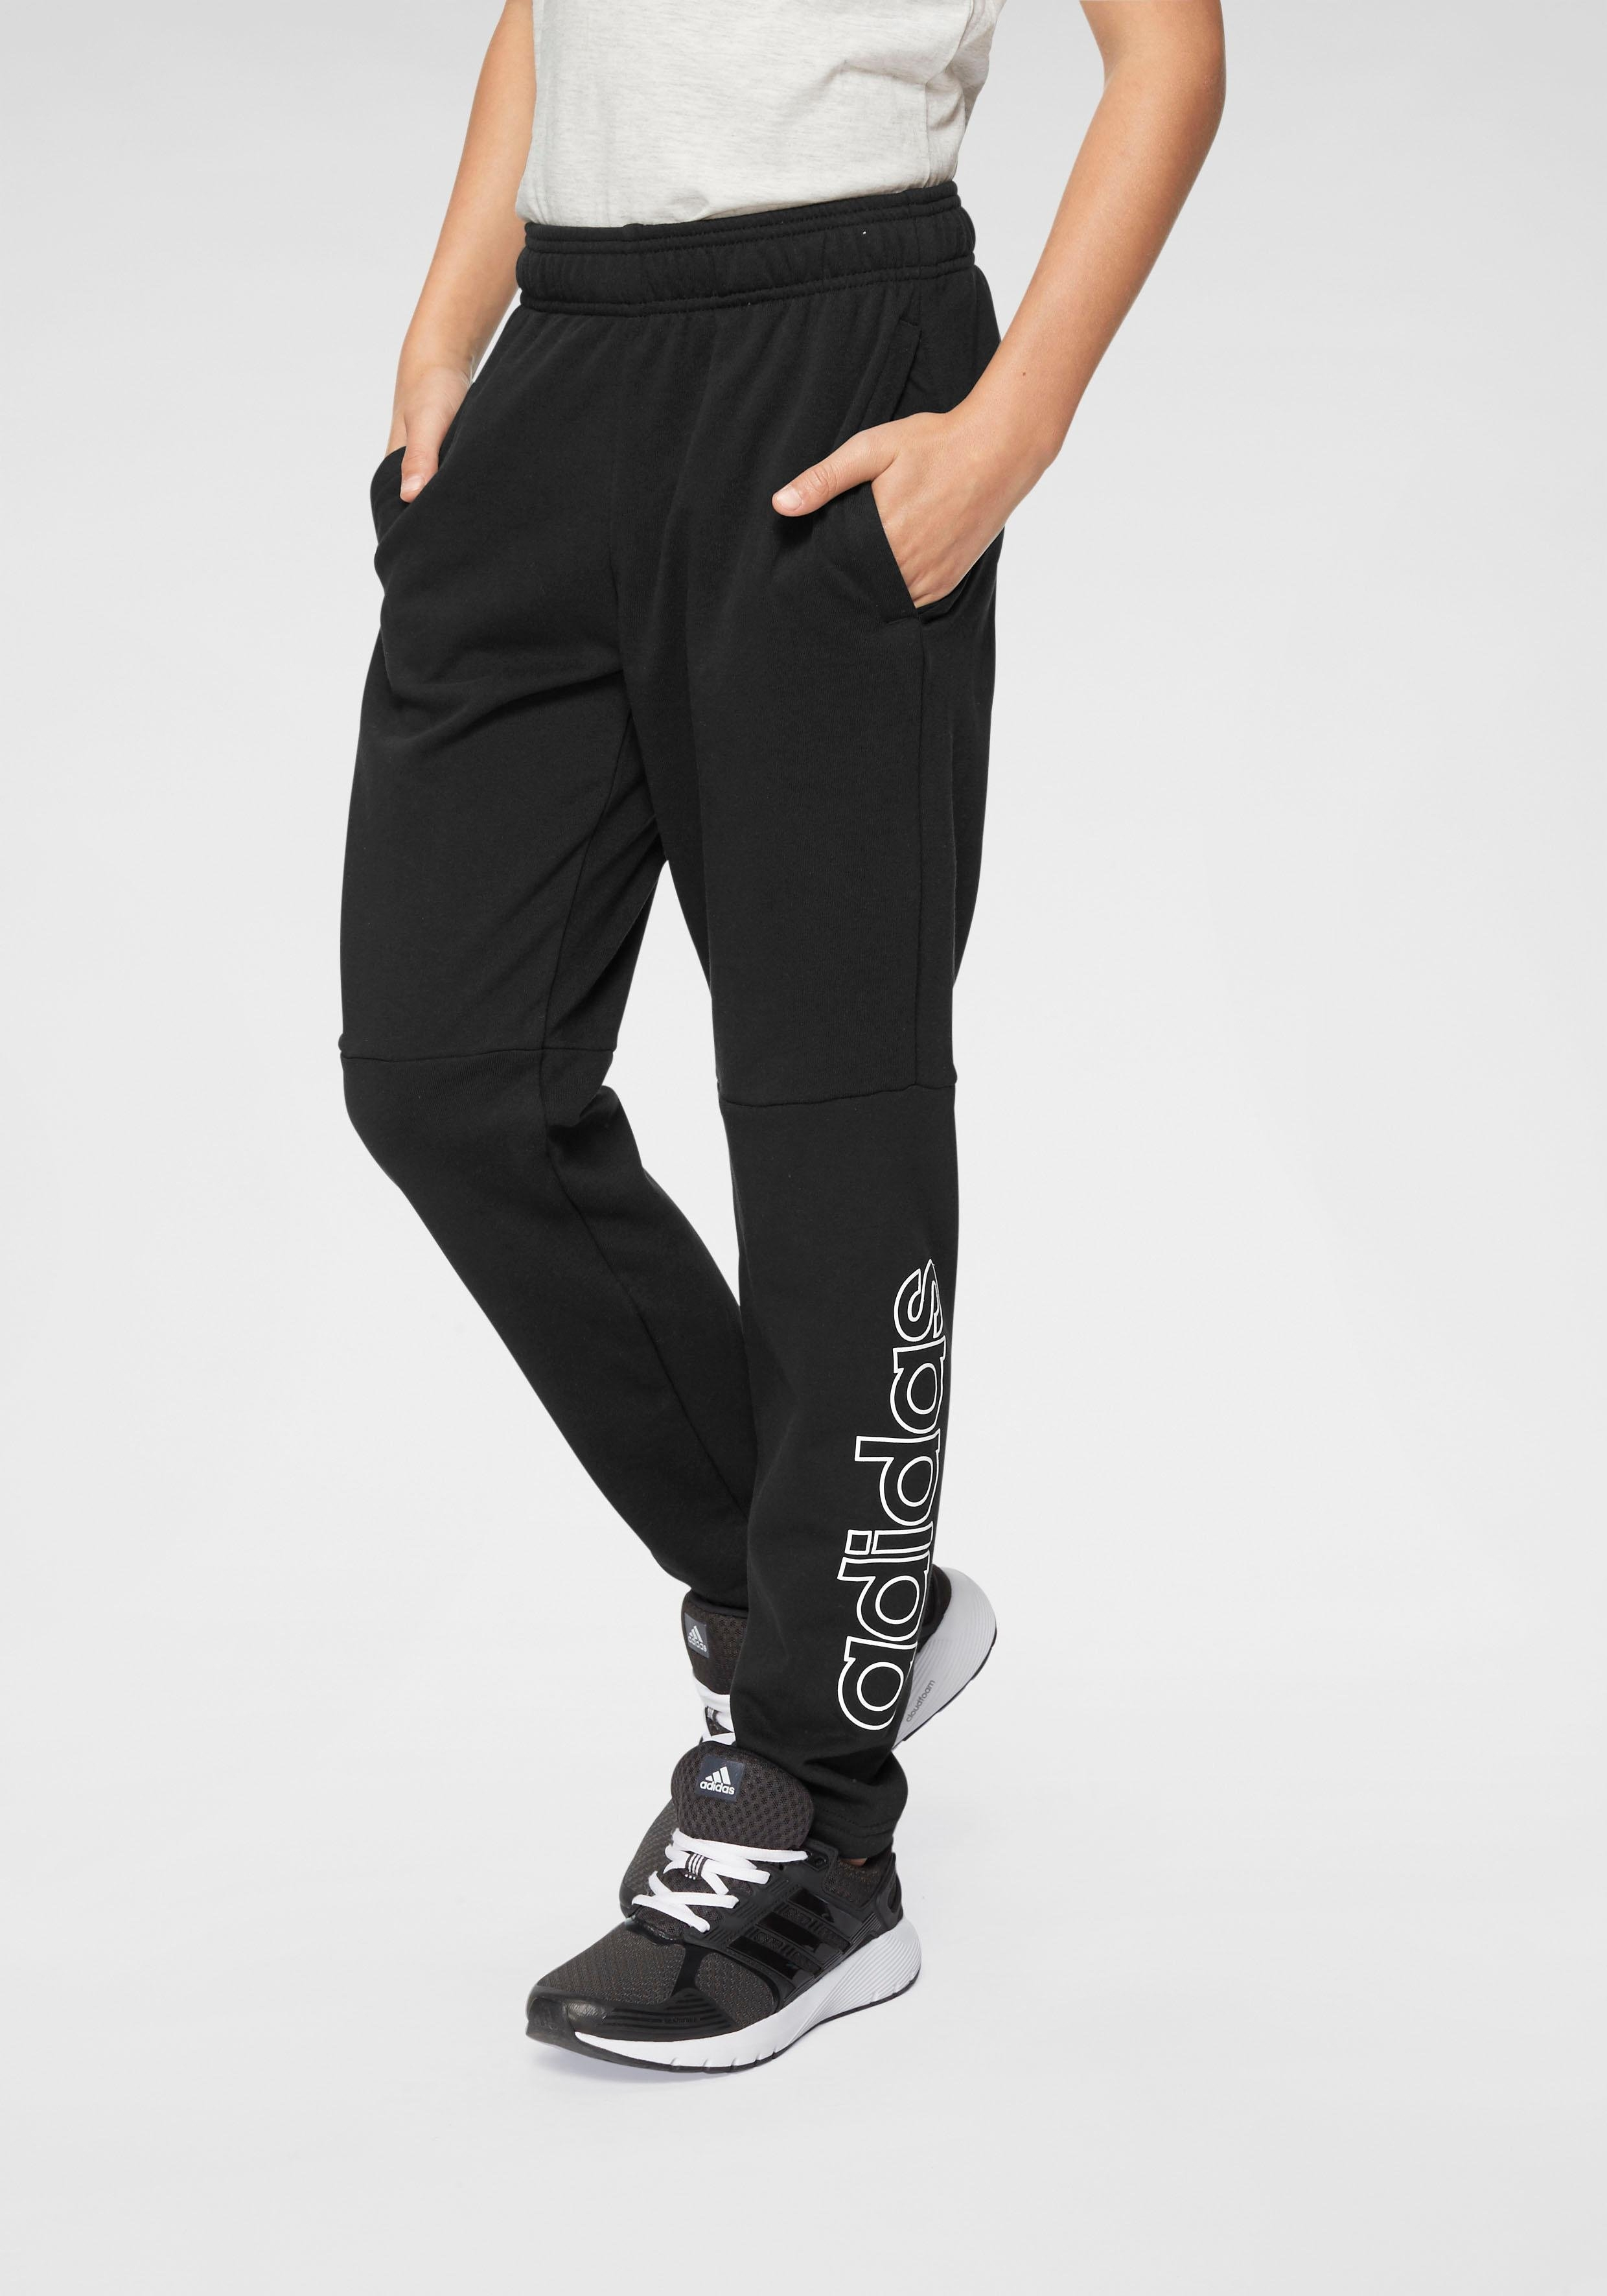 adidas Performance joggingbroek »E COMMERCIAL PACKAGE PANT« nu online kopen bij OTTO